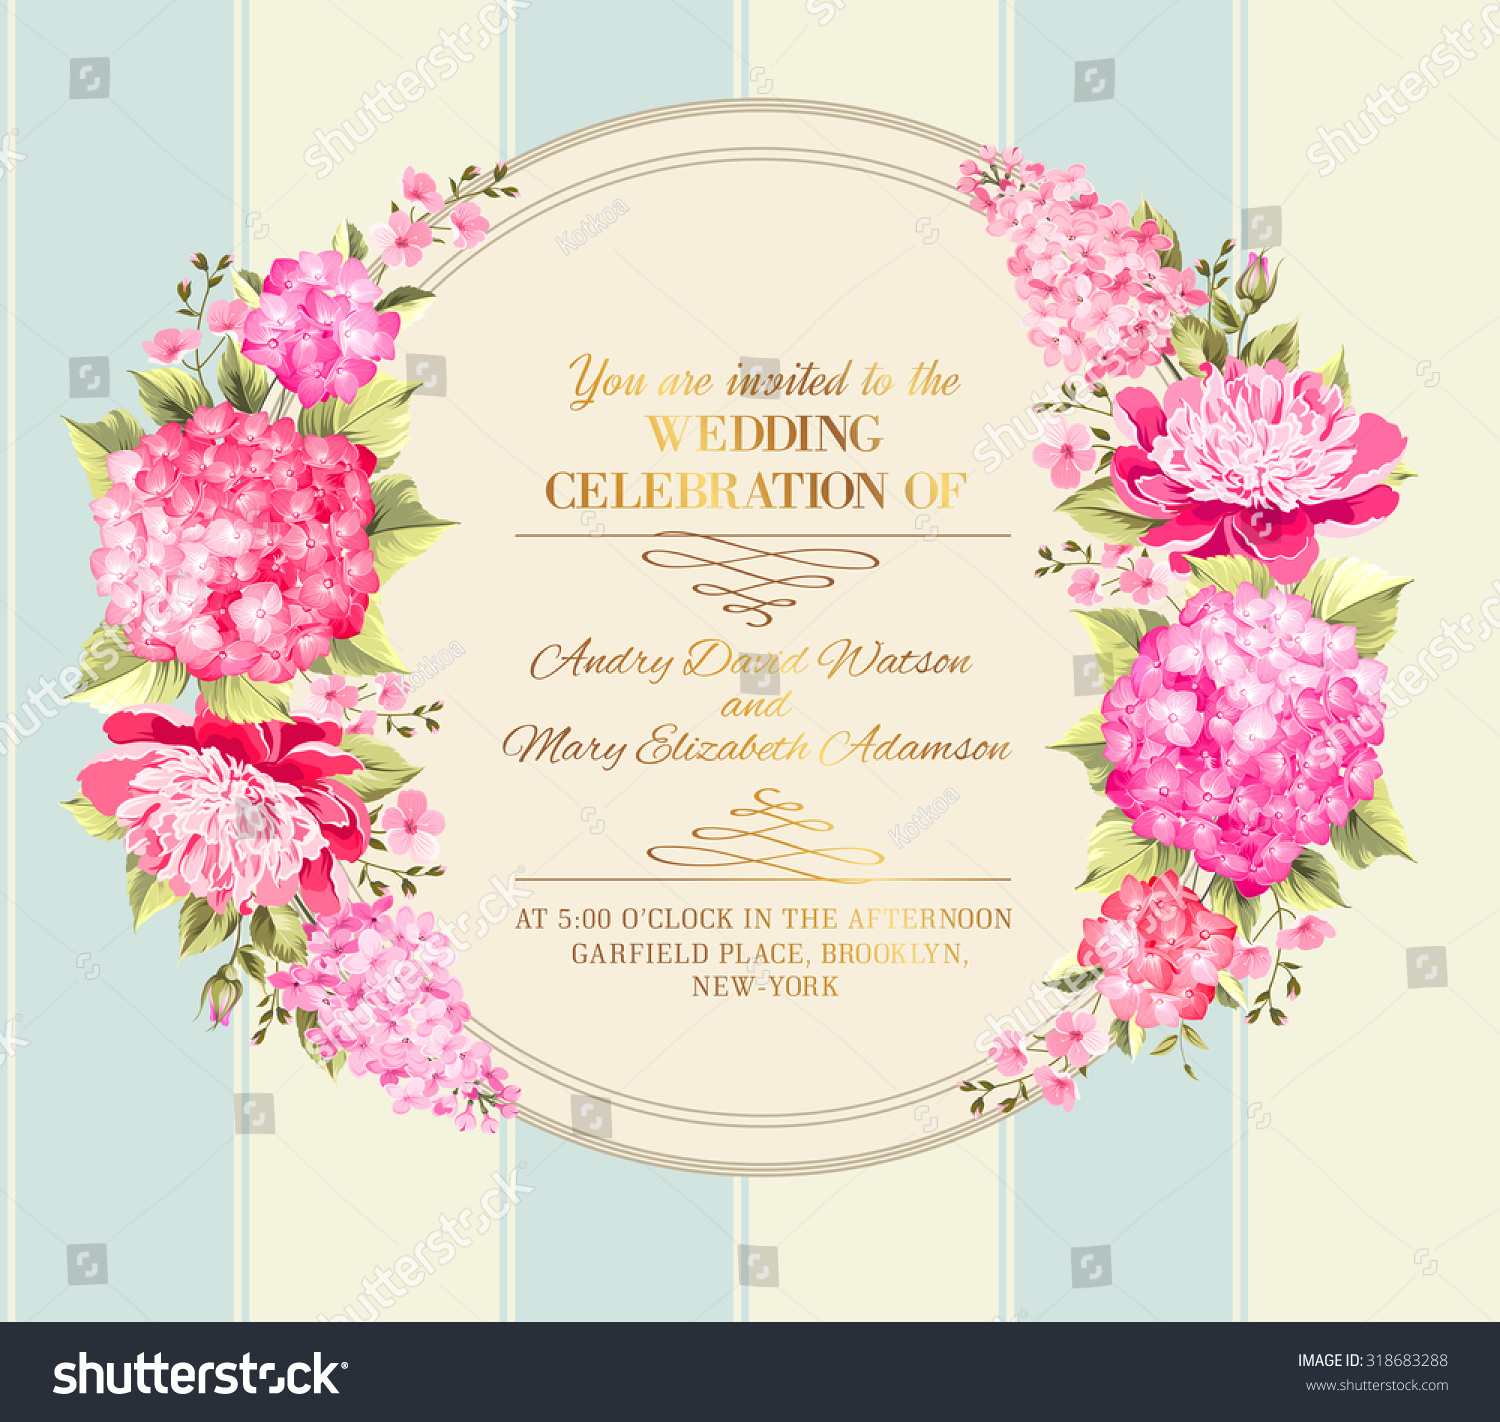 wedding invitation card pink flowers vintage stock vector royalty